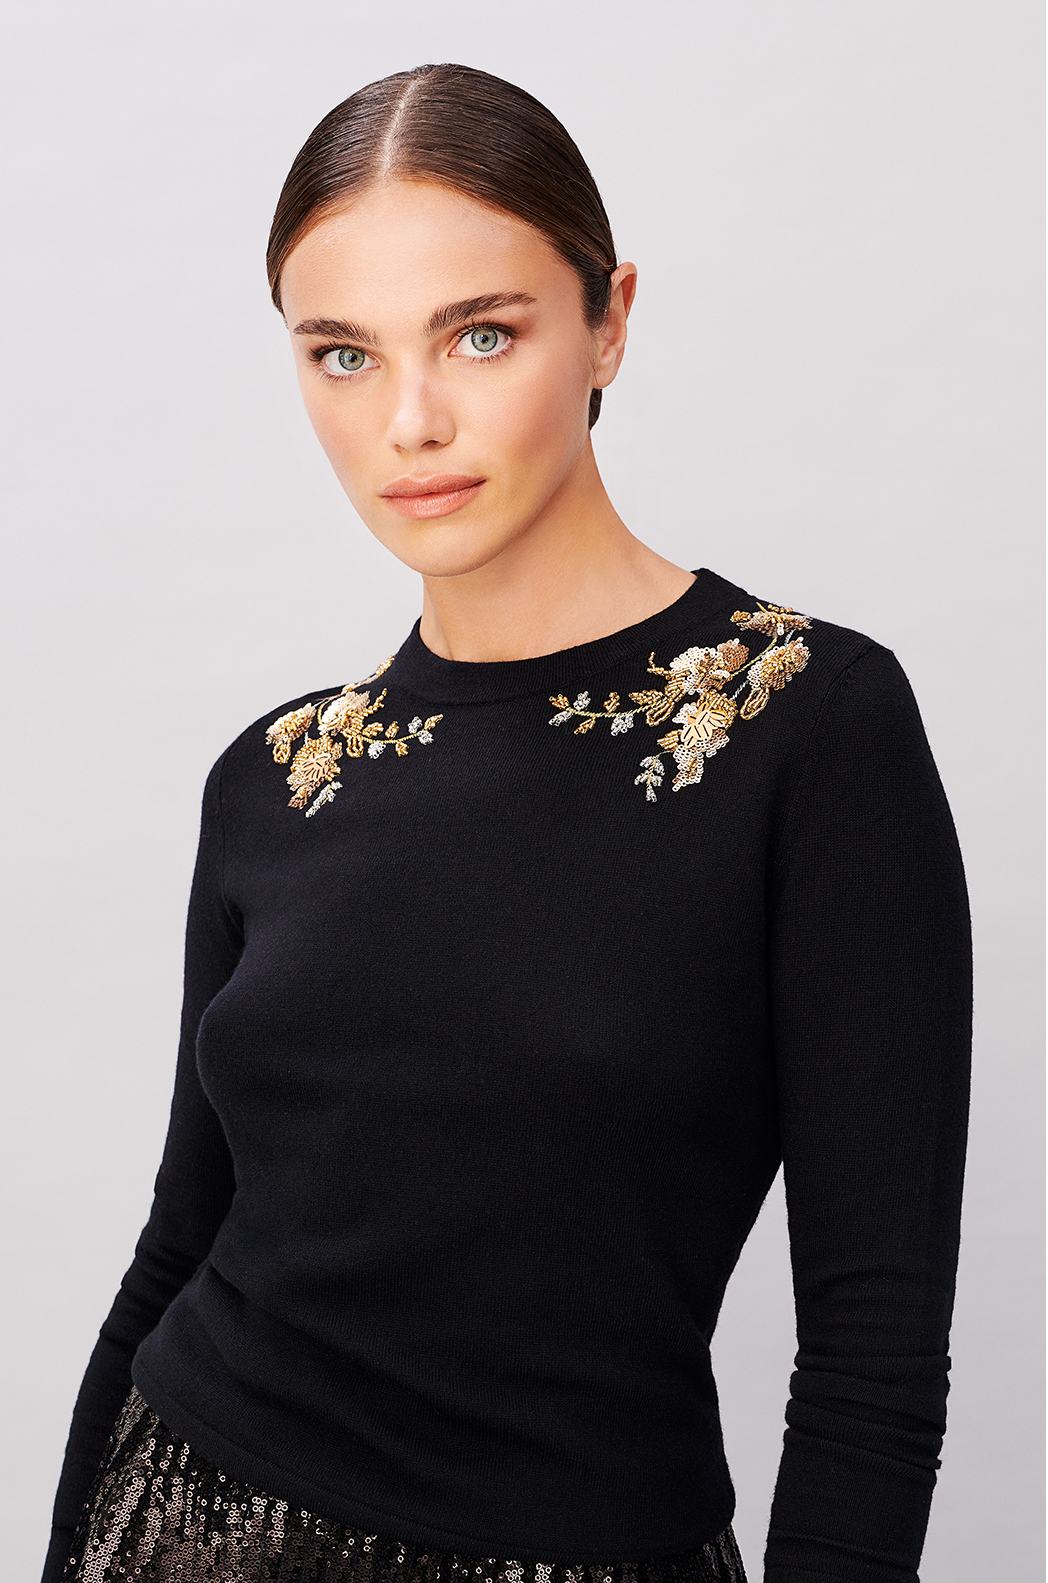 Model wears an embroidered jumper from Hobbs.